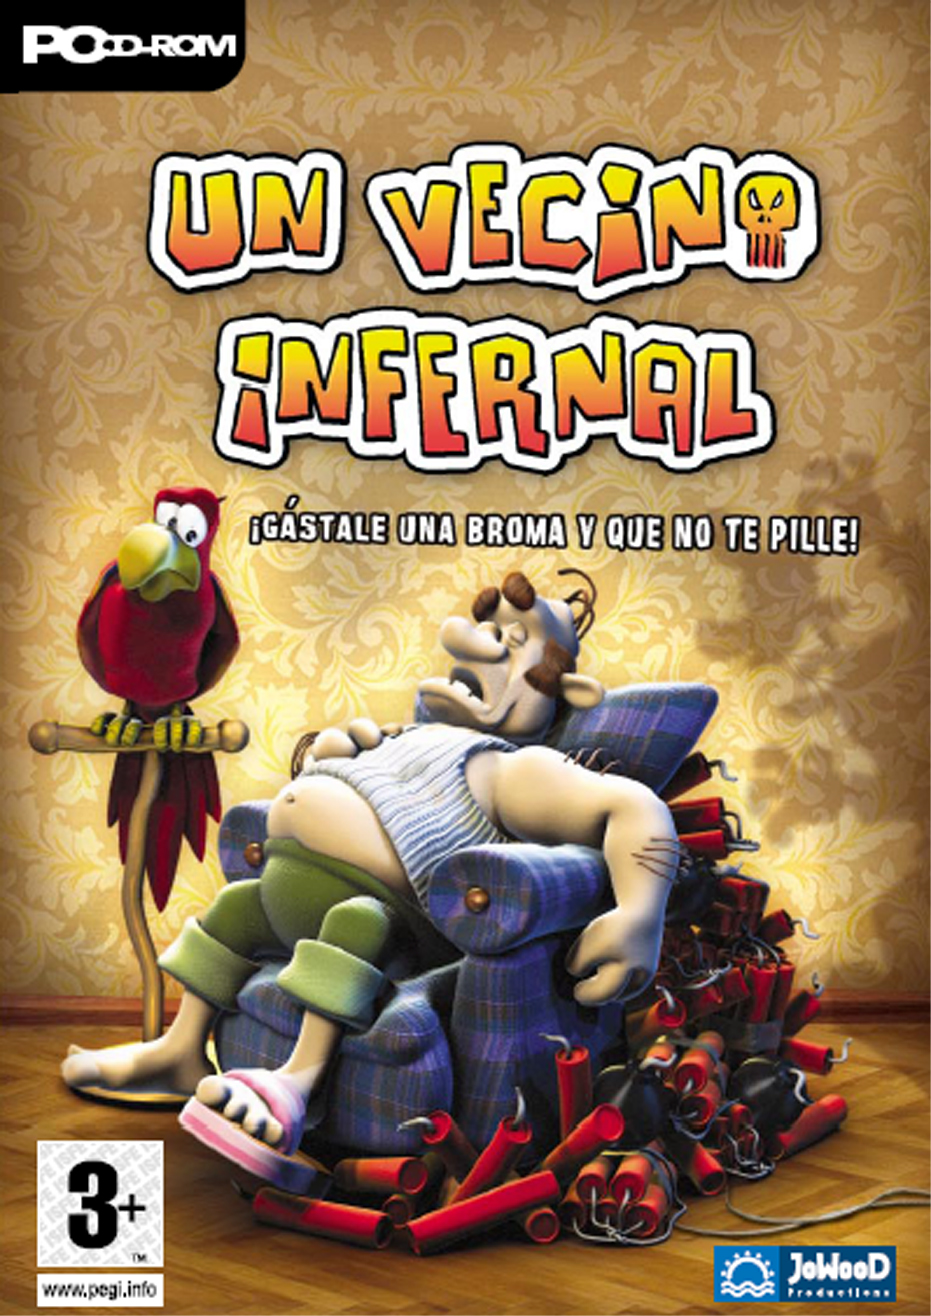 descargar vecino infernal 2 gratis